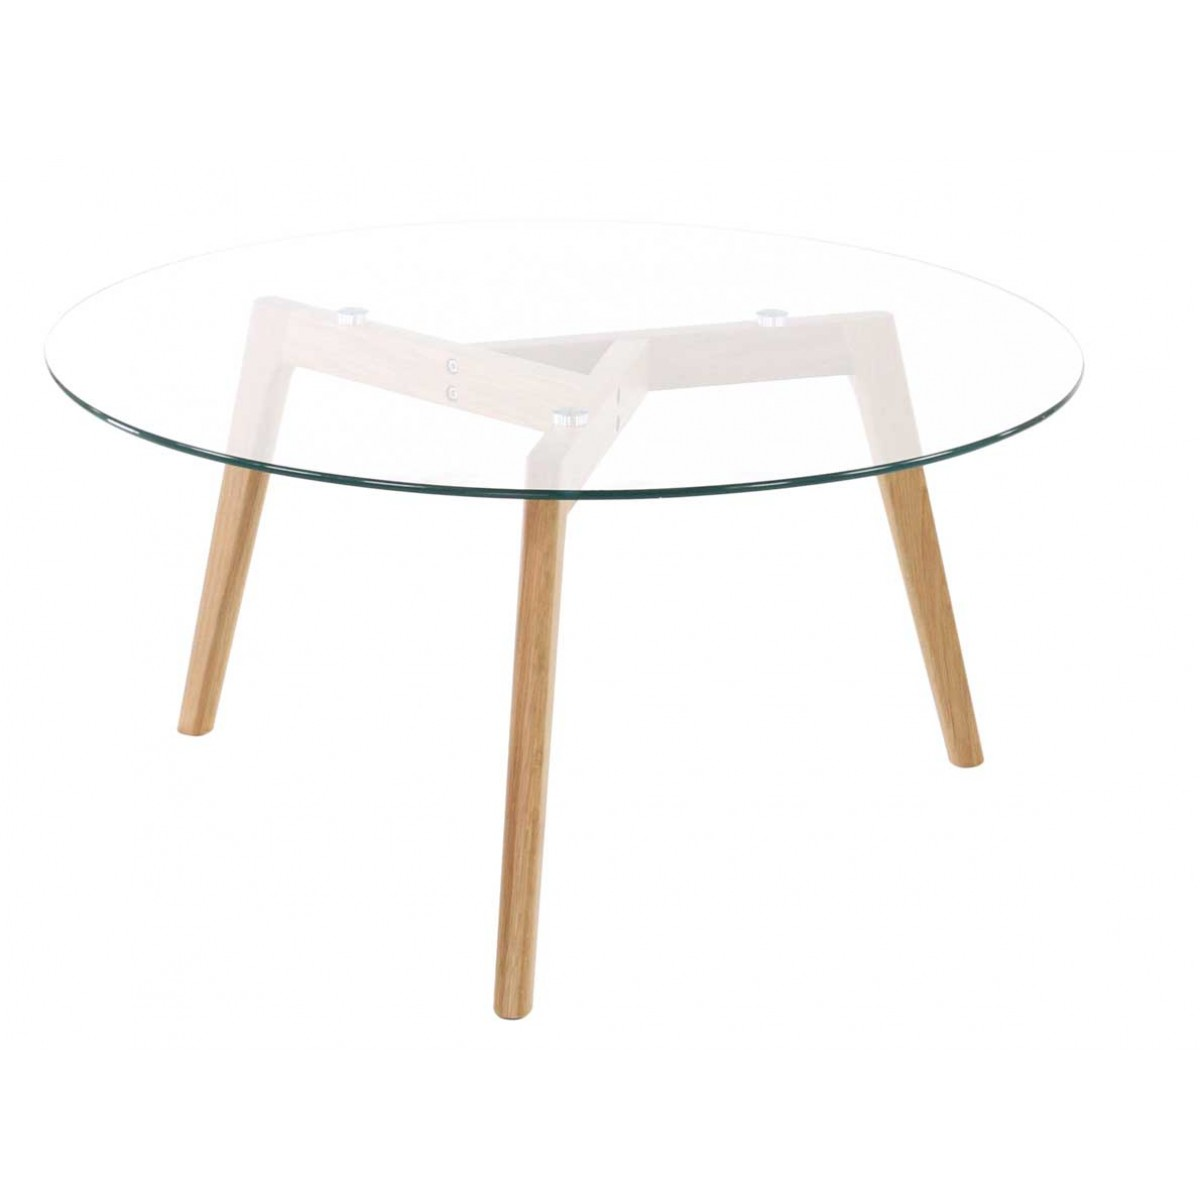 Table basse en verre ronde design scandie mooviin for Table basse verre